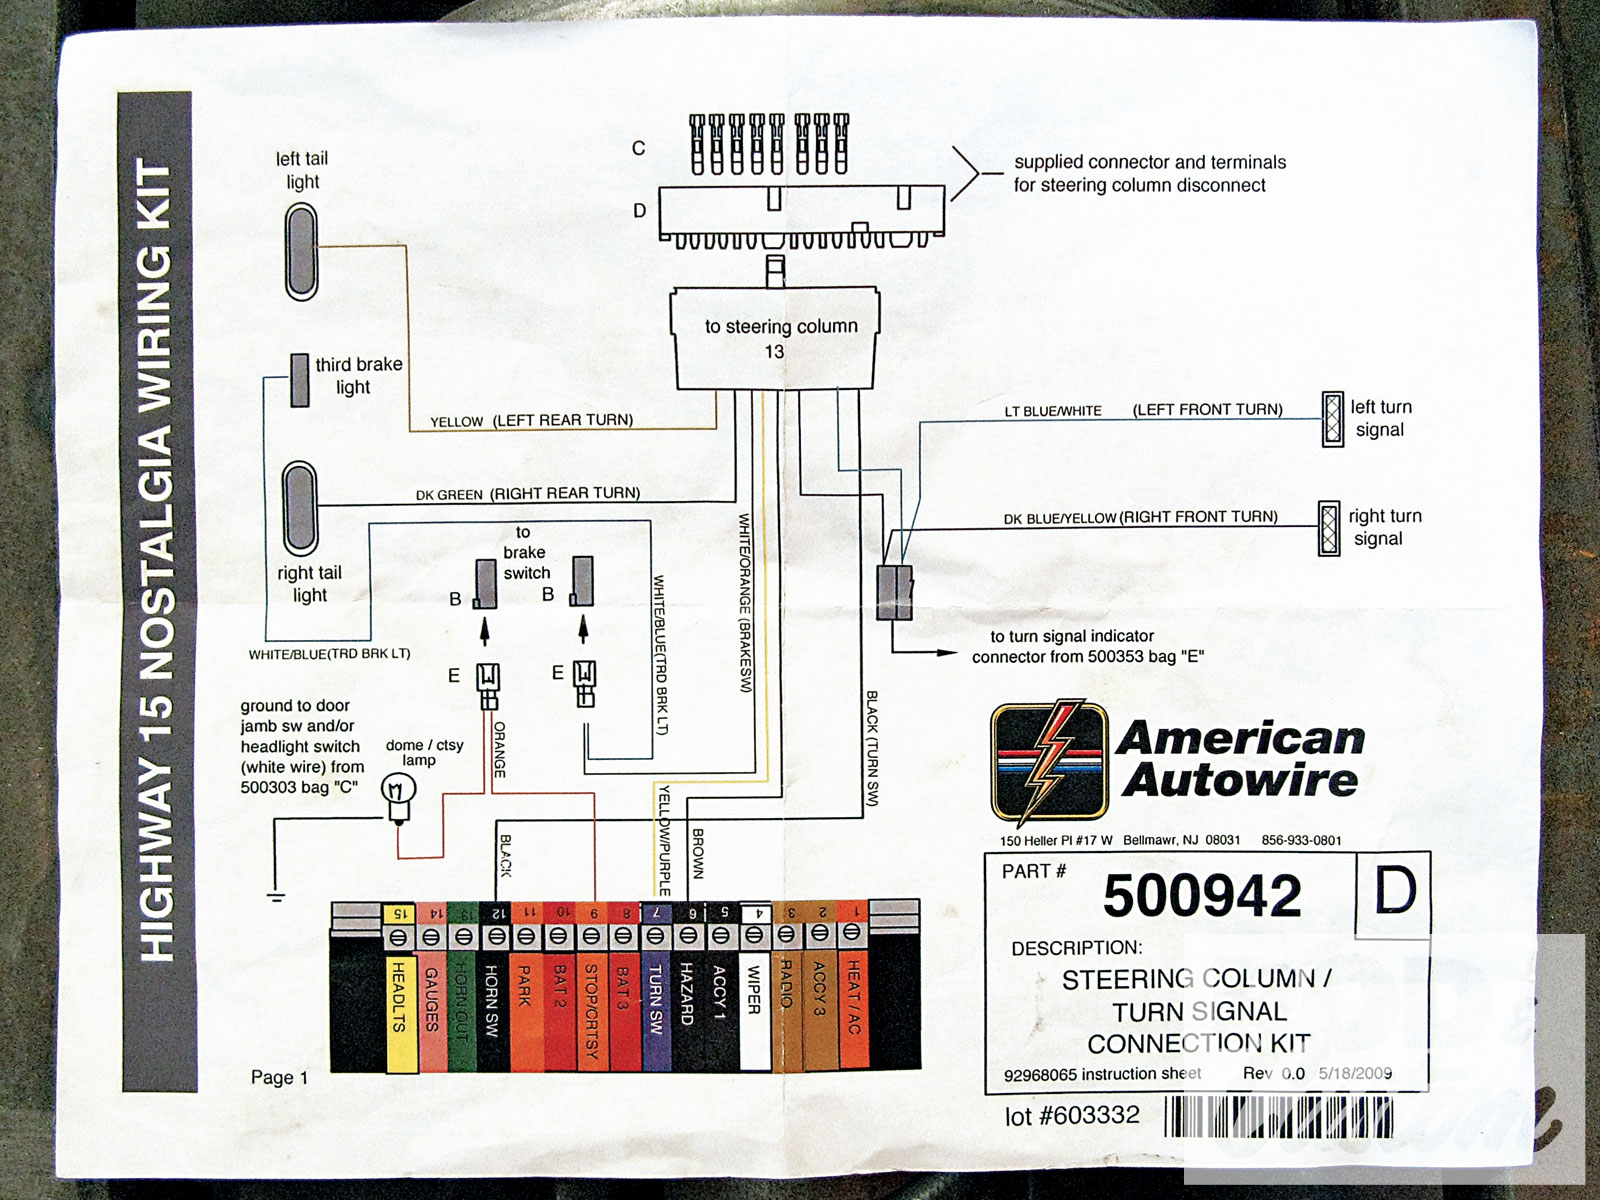 hight resolution of 1964 chevy turn signal wiring diagram wiring diagrams1964 impala steering column turn signal switch diagram schema